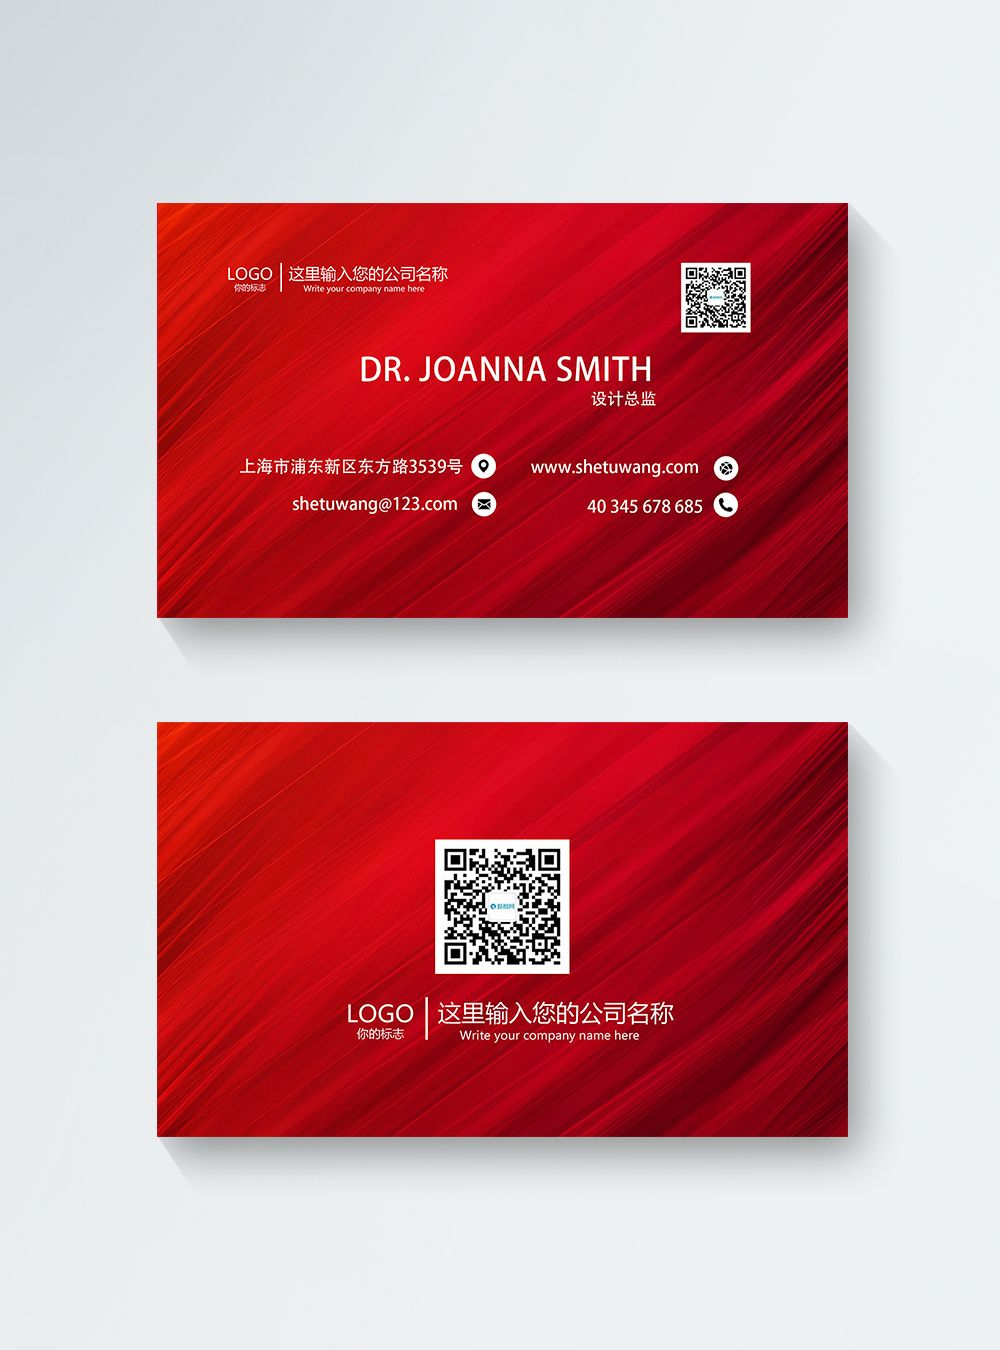 Red Design Director S Card Personal Business Card Business Card Business Card Te Free Business Card Templates Download Business Card Red Business Card Design